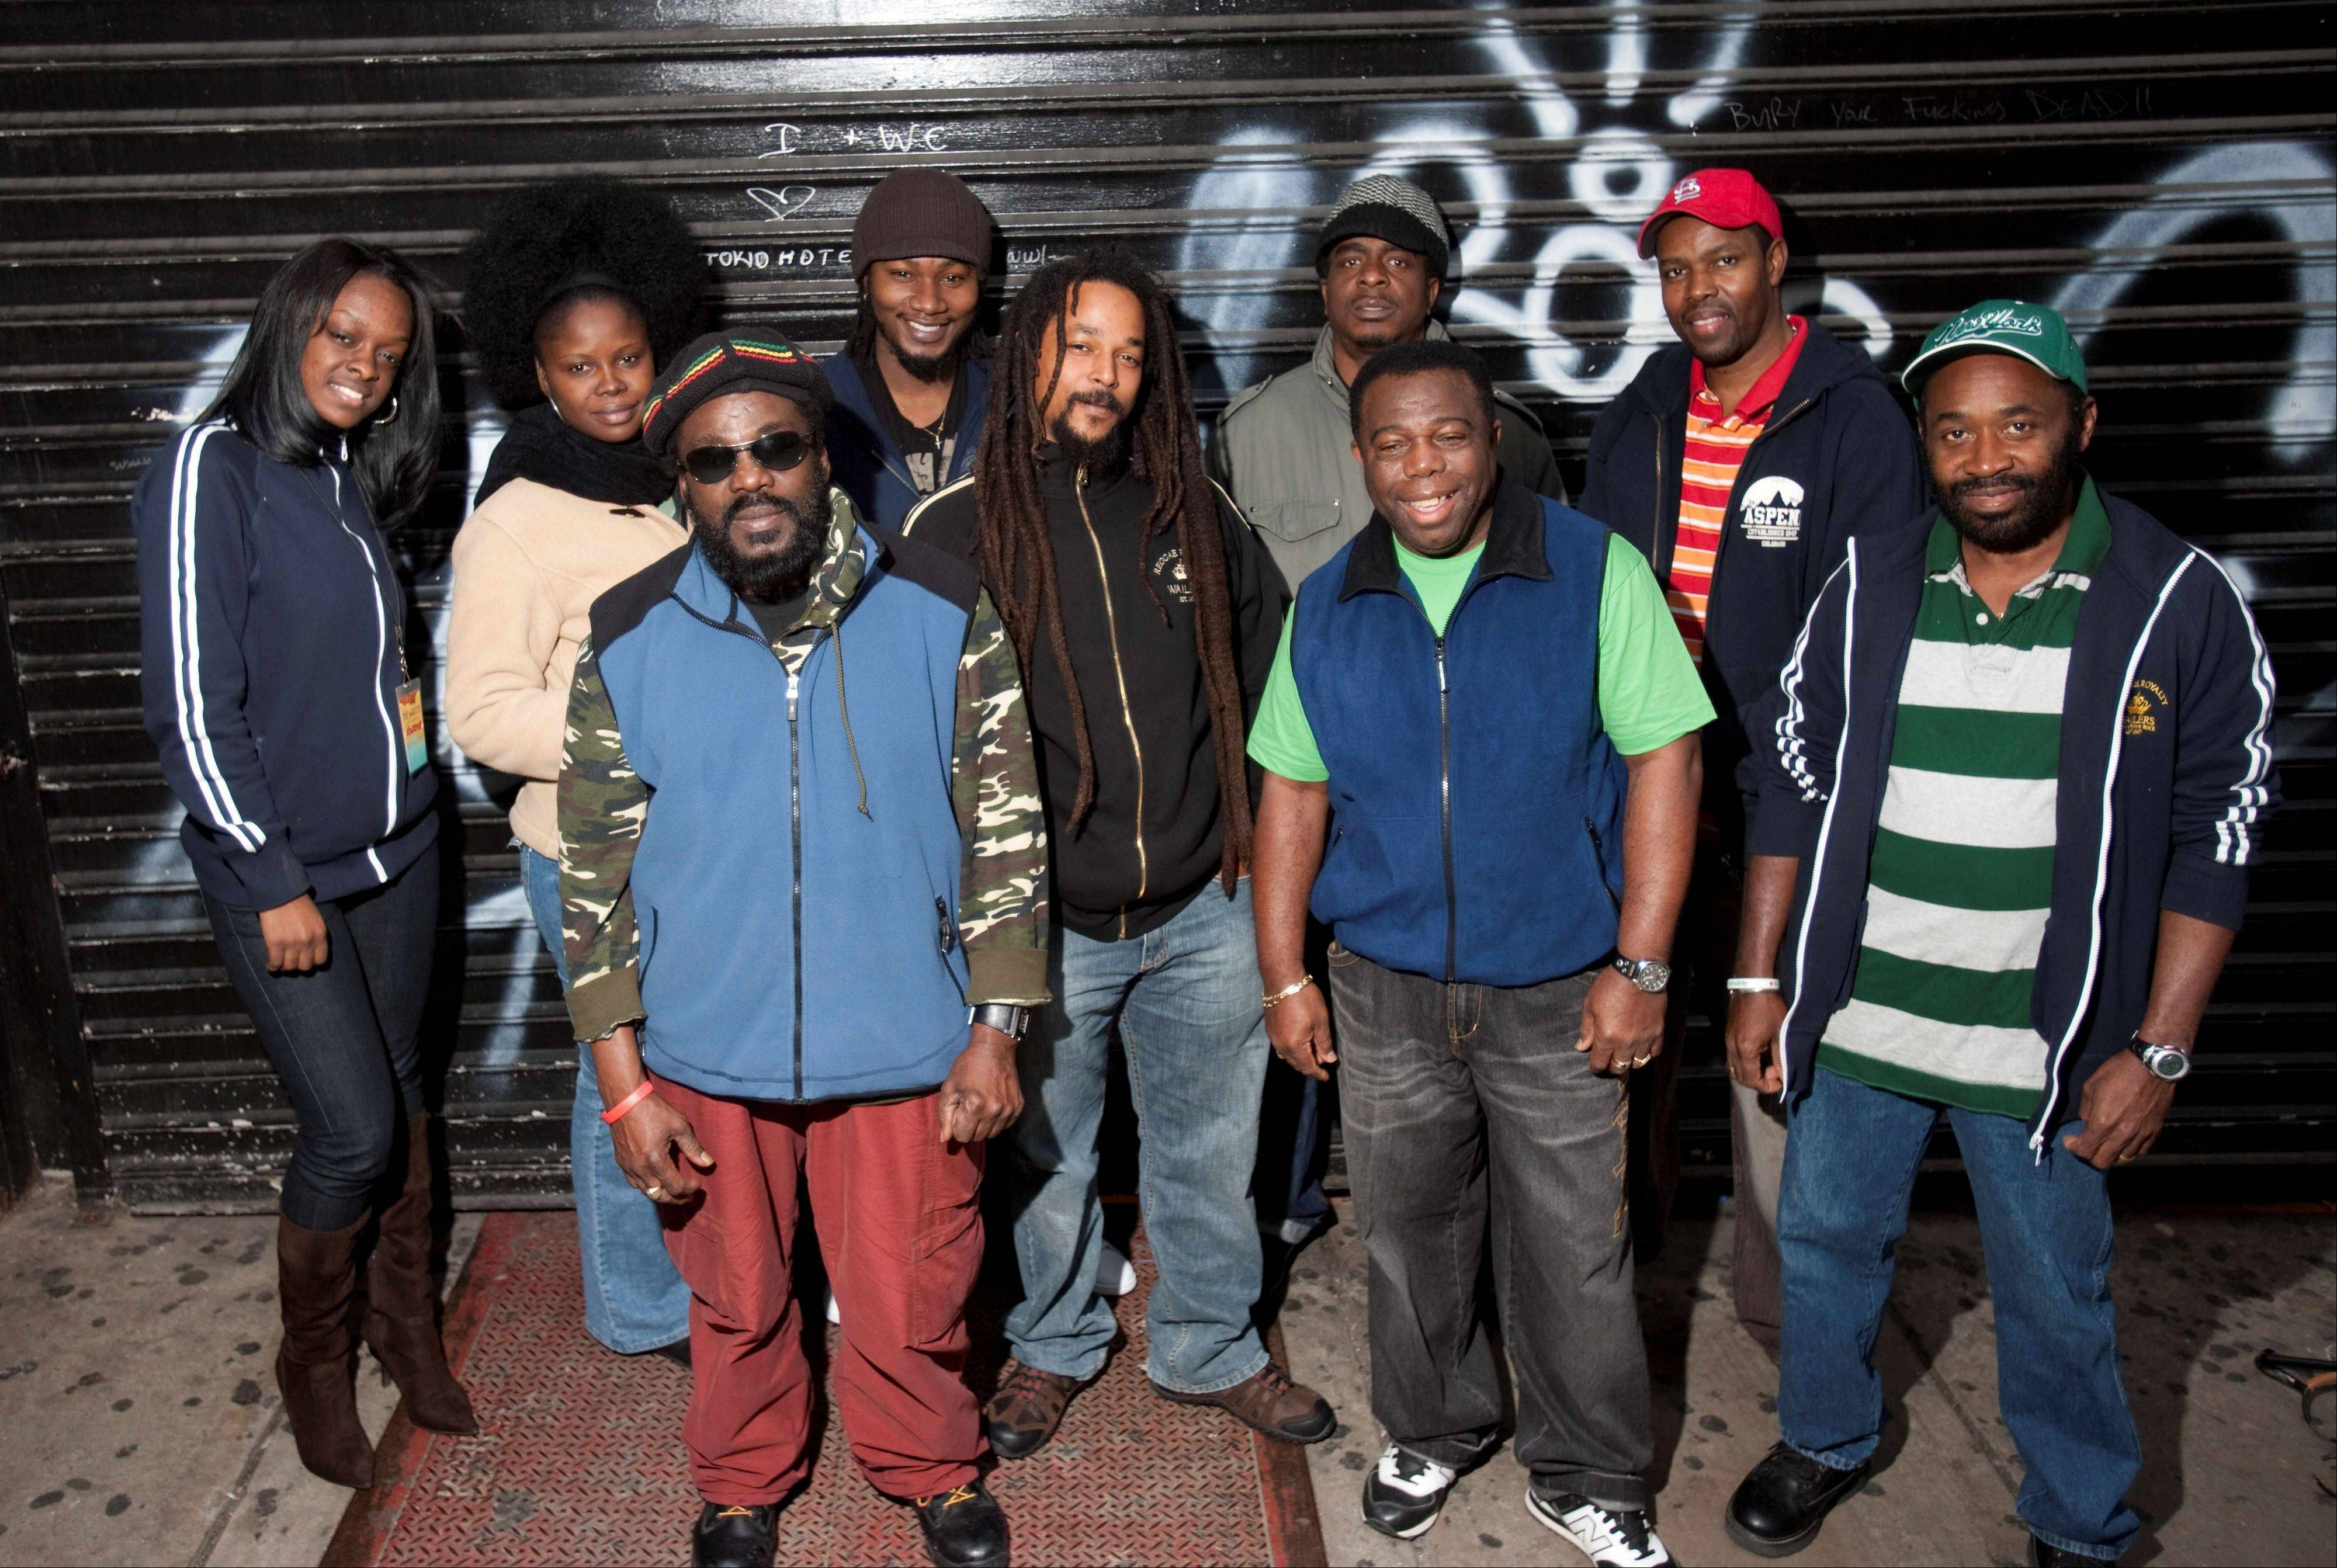 The Wailers perform reggae at Bands in the Sand IV at Sideouts in Island Lake.